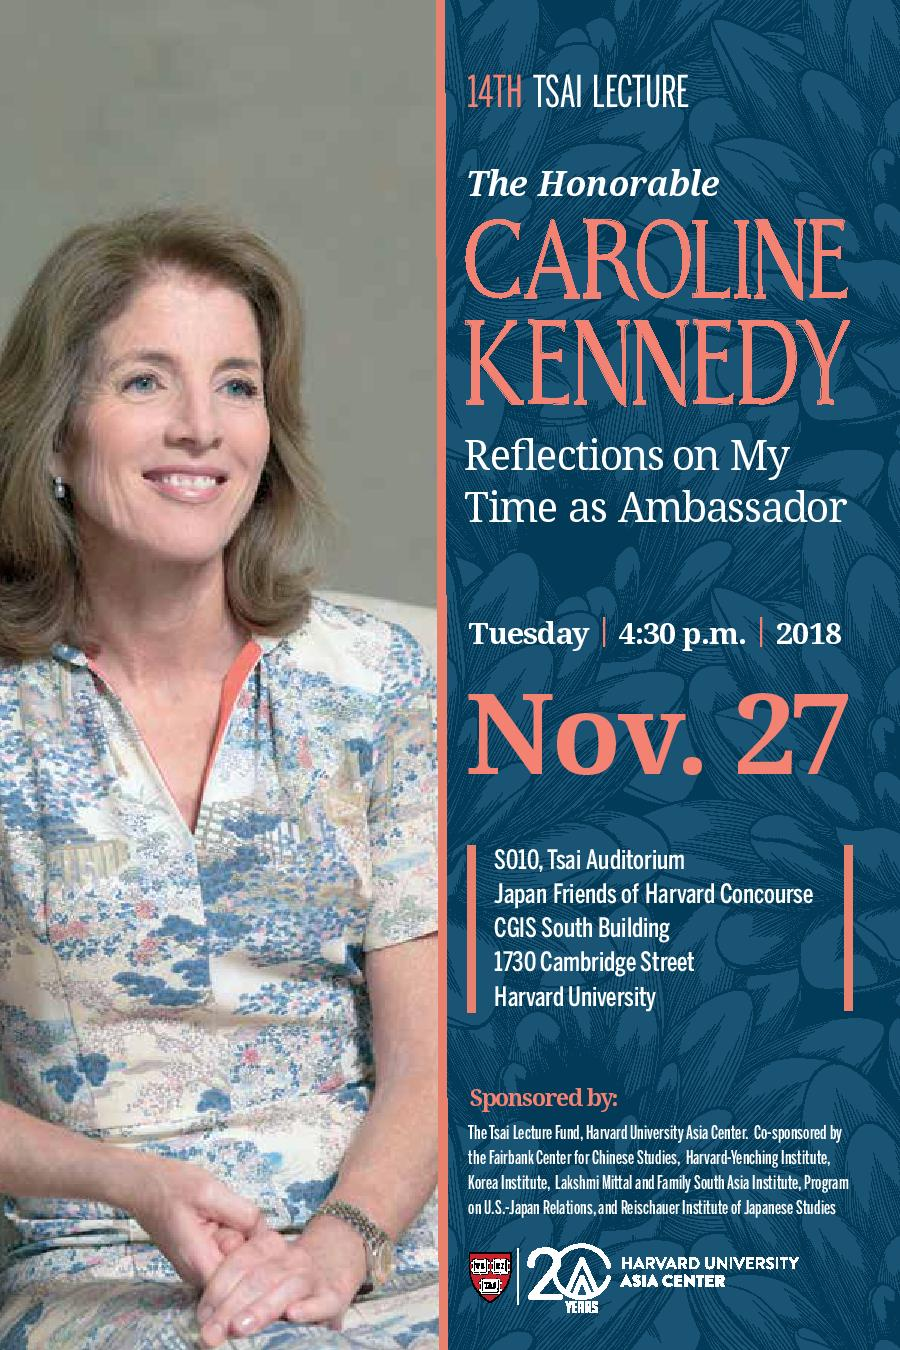 The Honorable Caroline Kennedy Gives the 14th Tsai Lecture